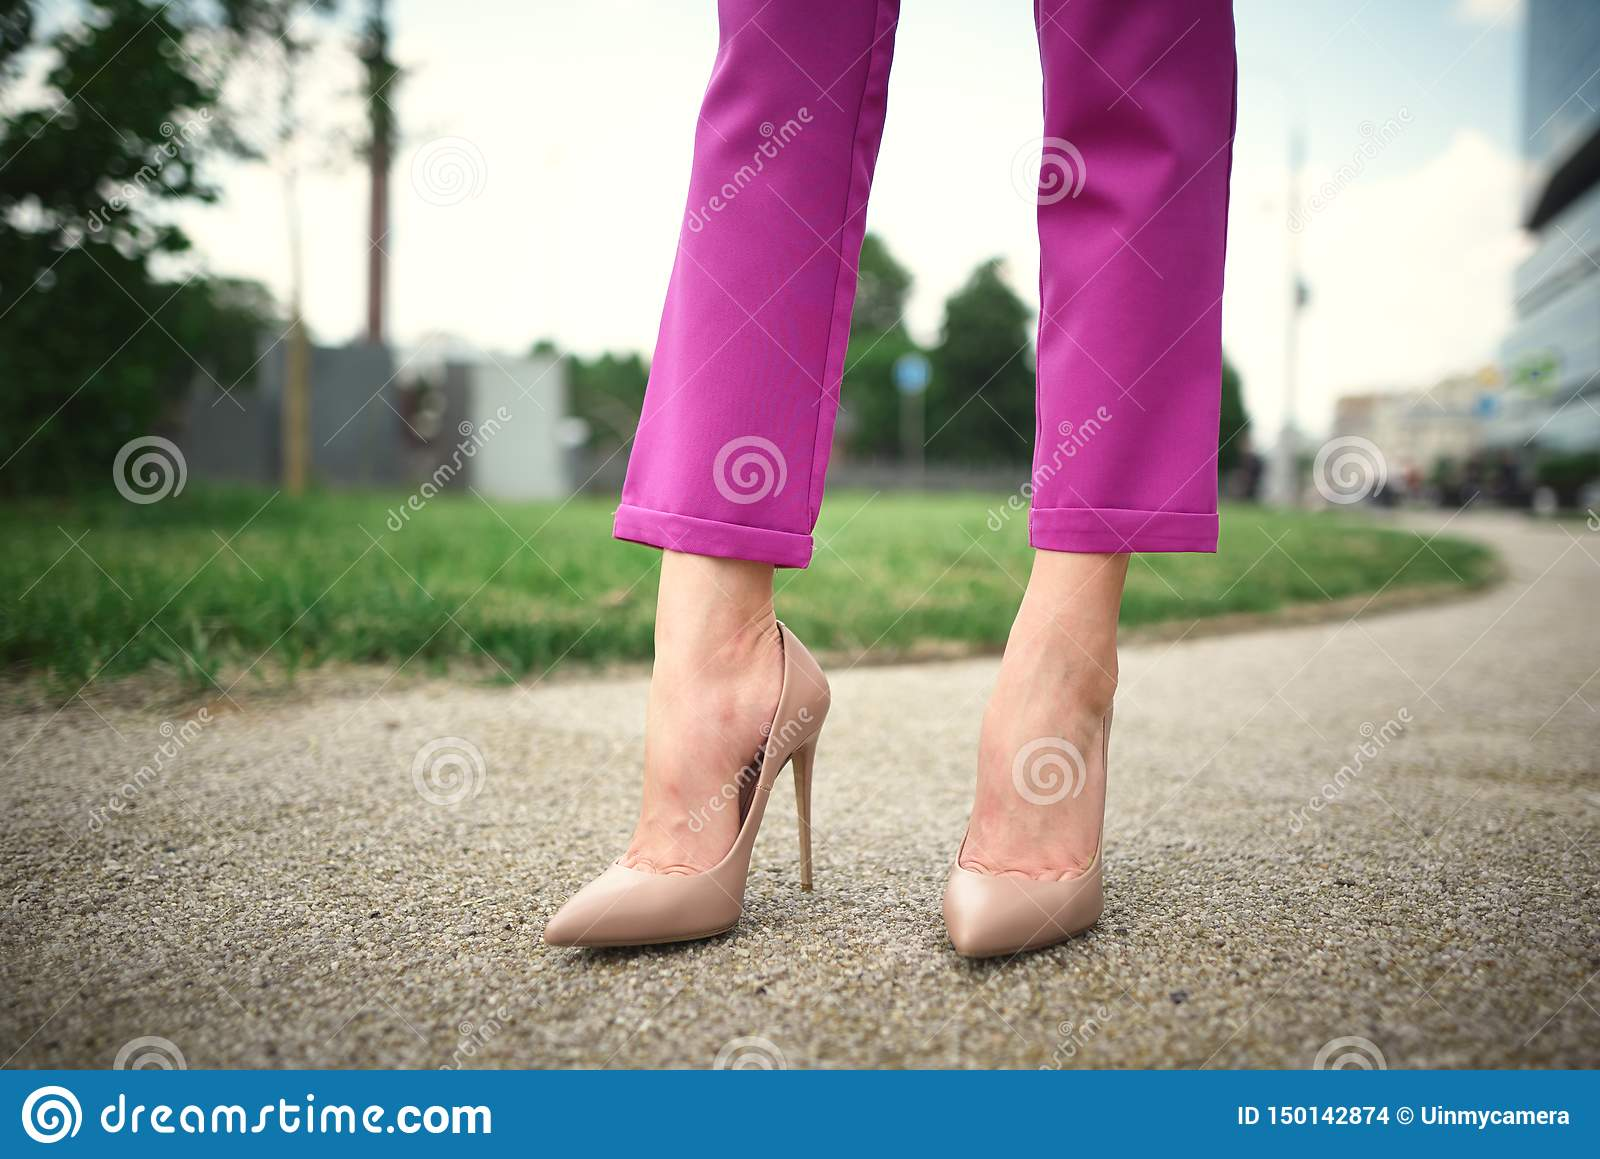 legs of a young girl in heels stand on the street